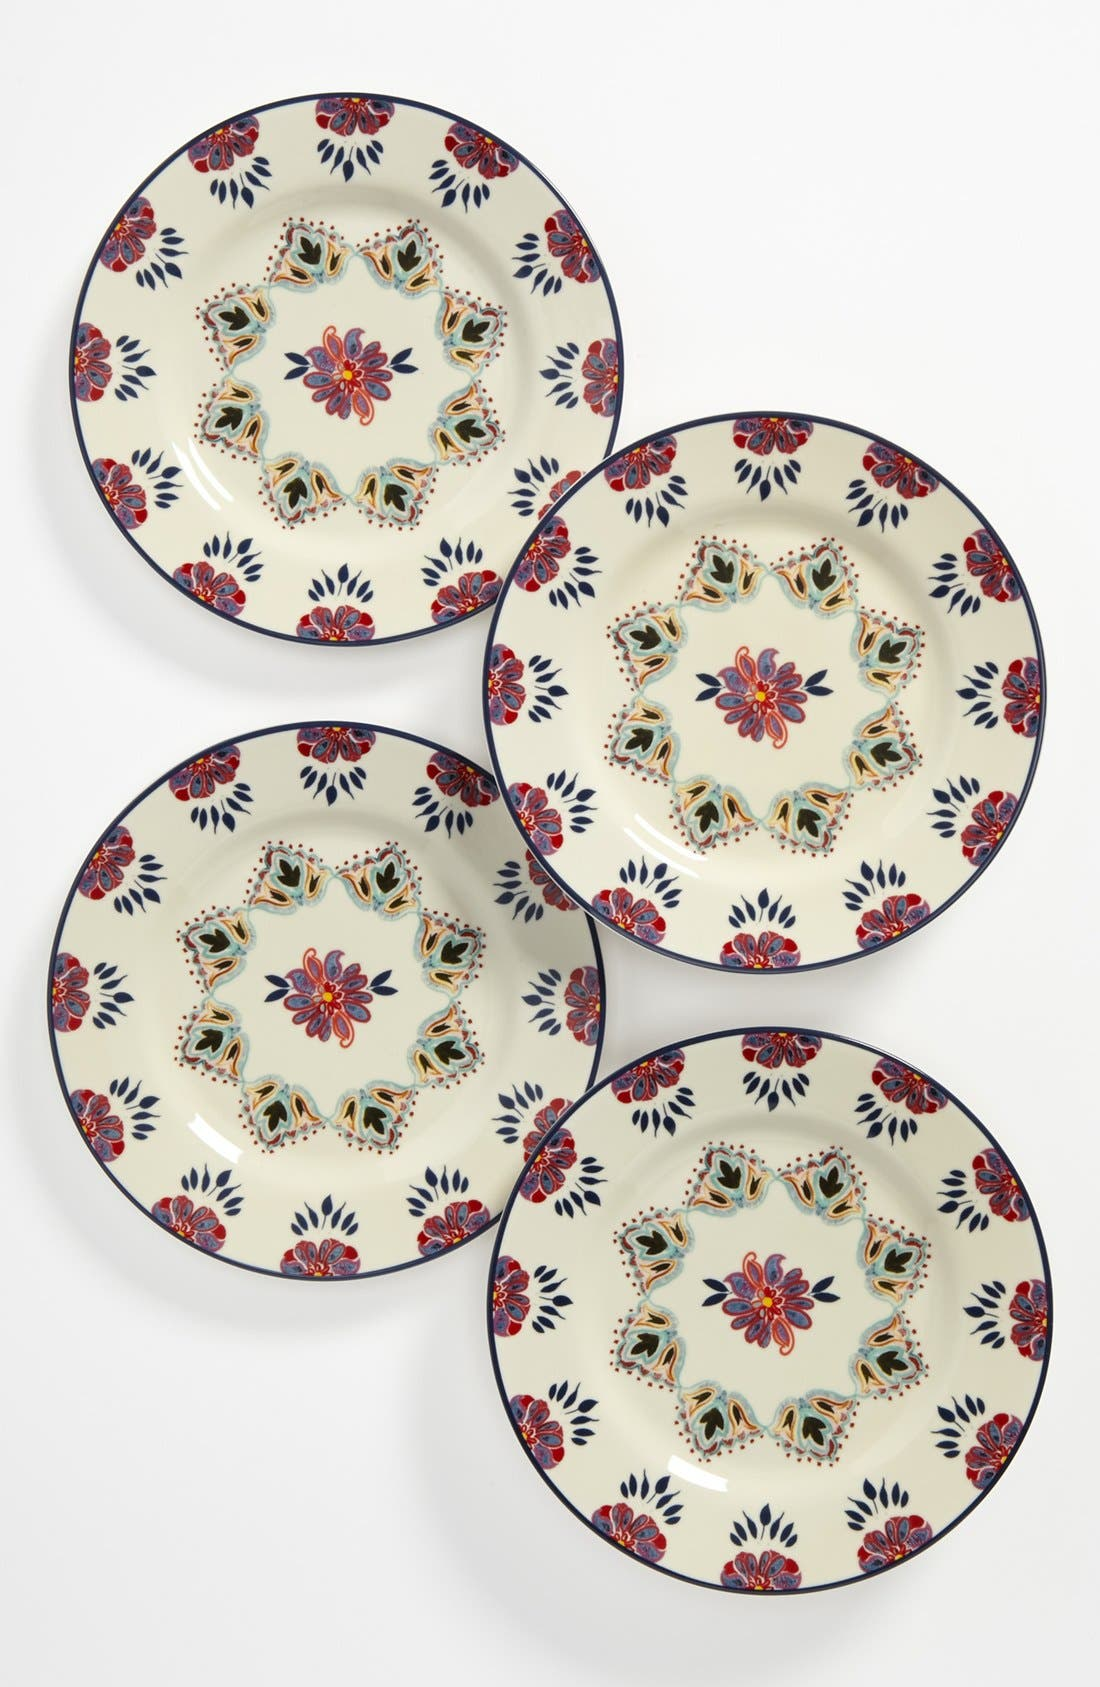 Alternate Image 1 Selected - Porcelain Salad Plates (Set of 4)